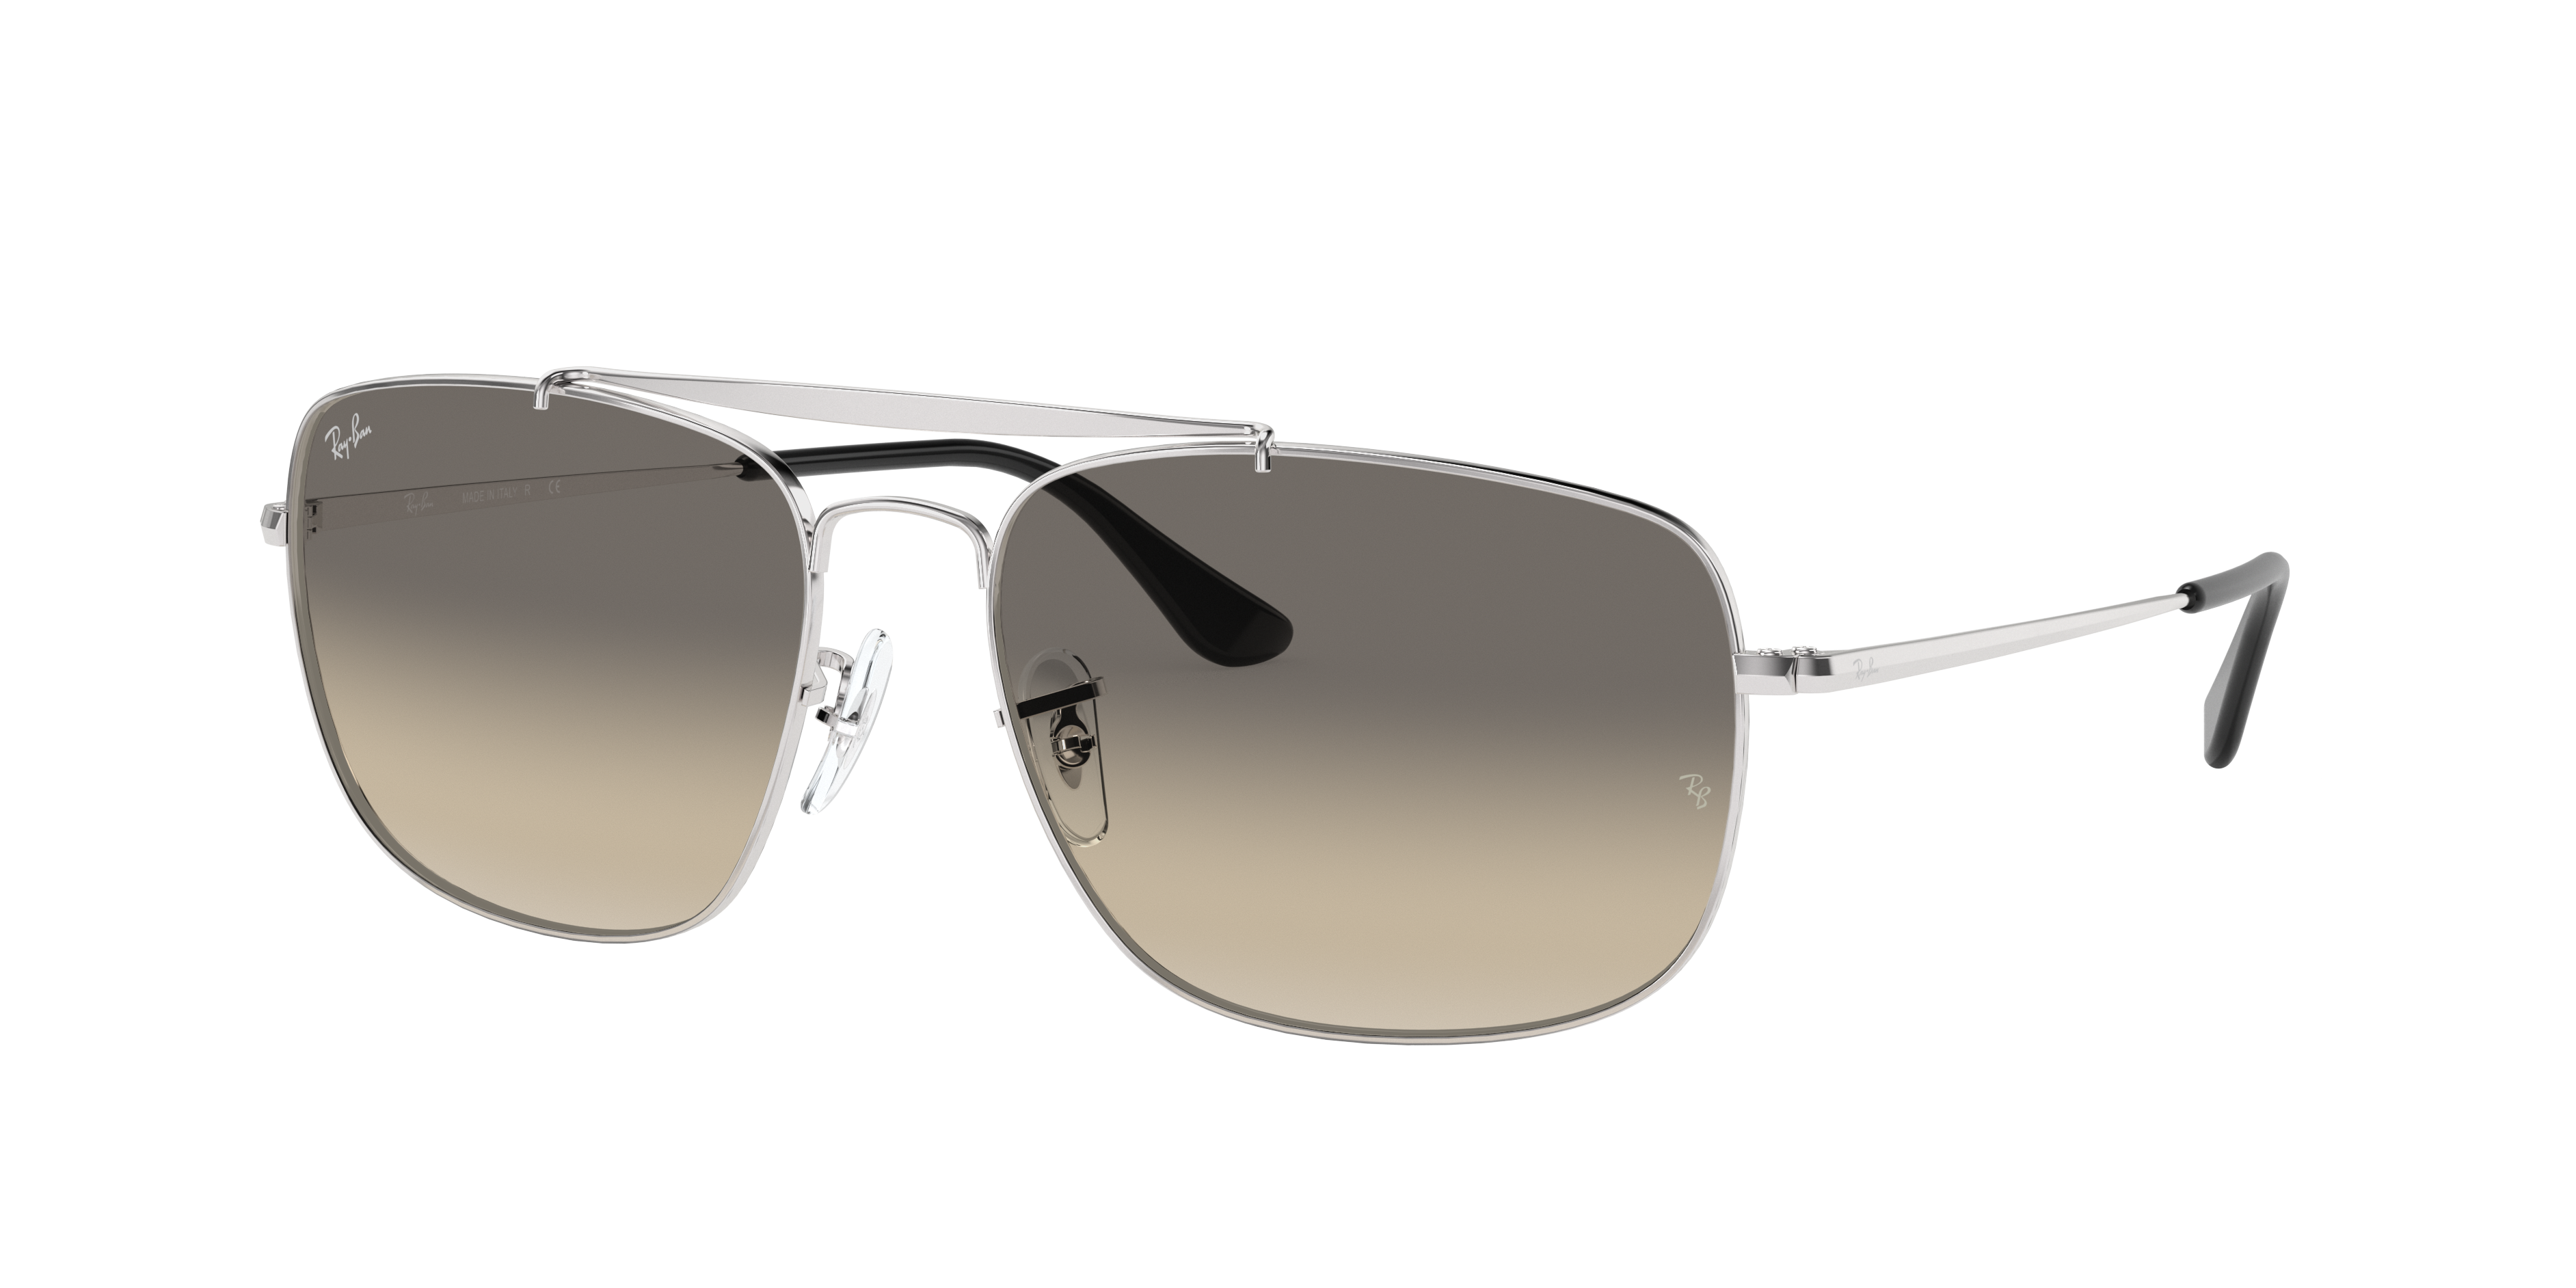 Ray-Ban Colonel Silver, Gray Lenses - RB3560